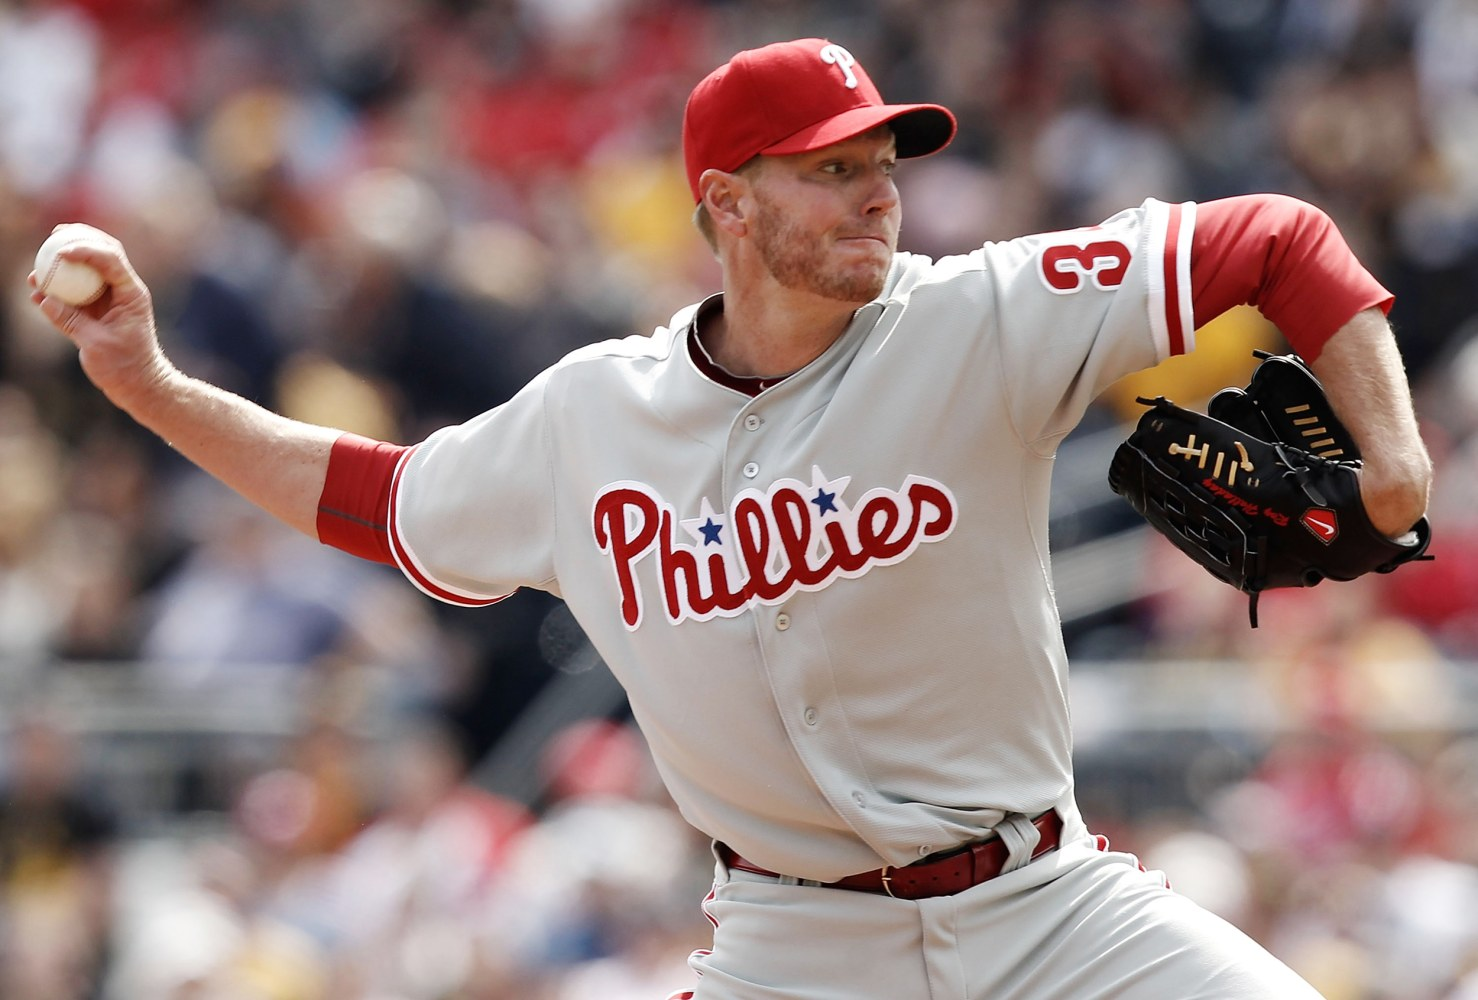 Roy Halladay, legendary Blue Jays pitcher, killed in small plane crash